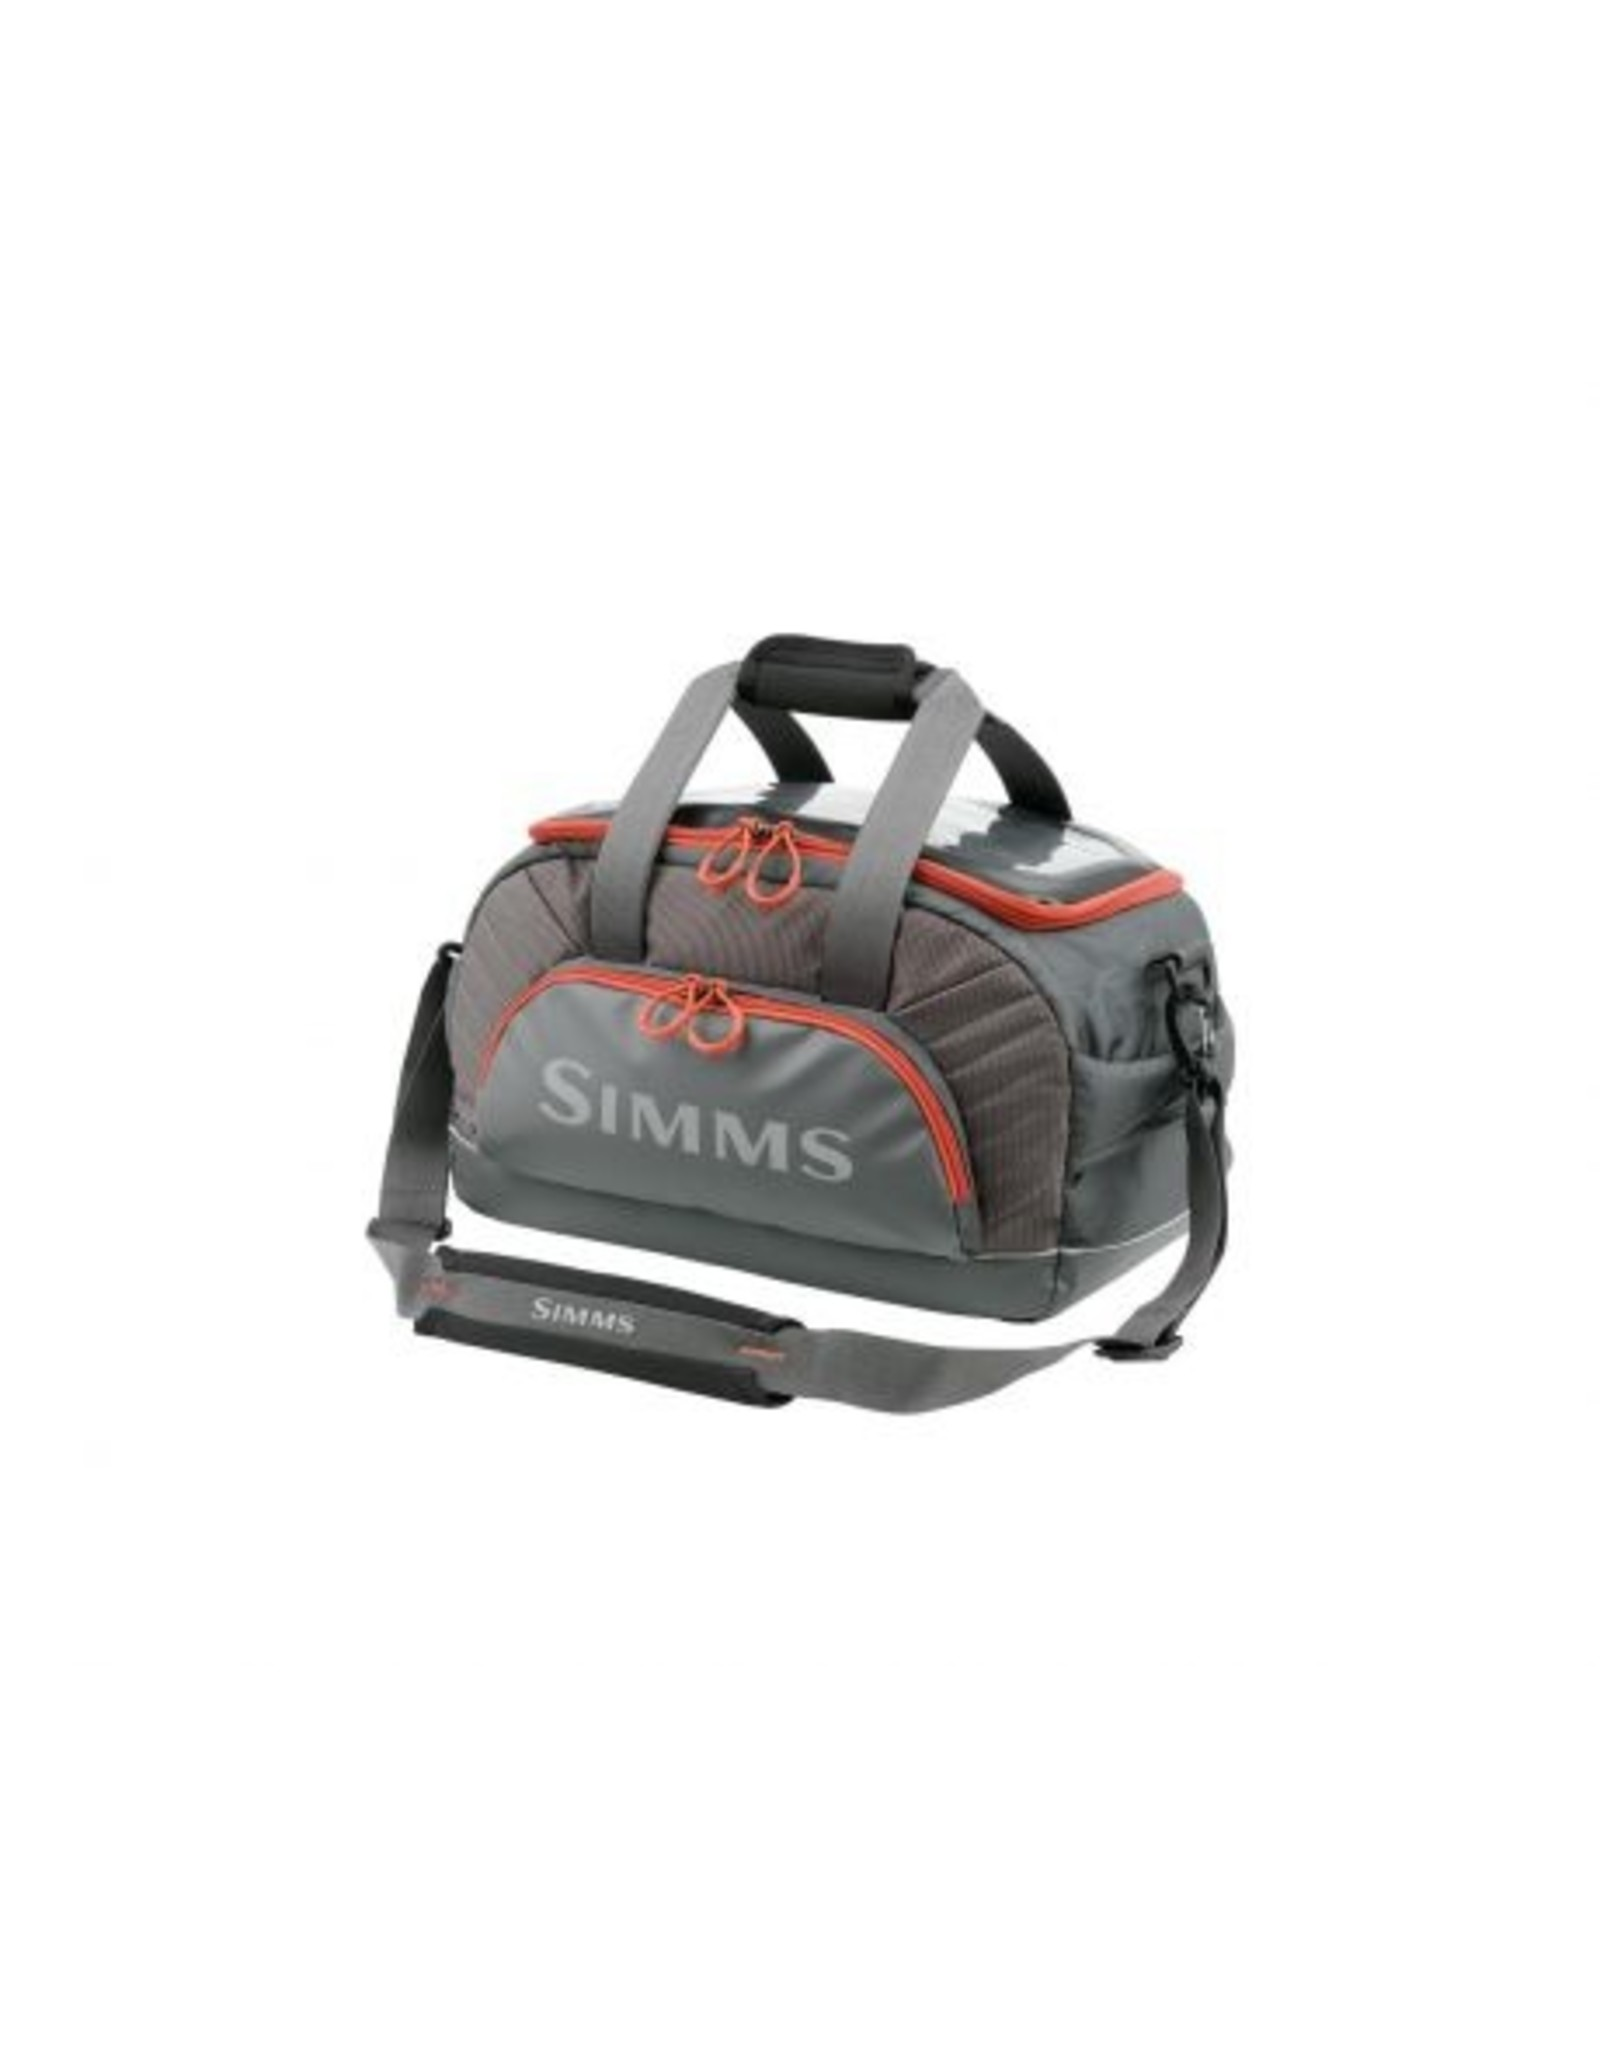 Simms Simms - Challenger Tackle Bag - Small